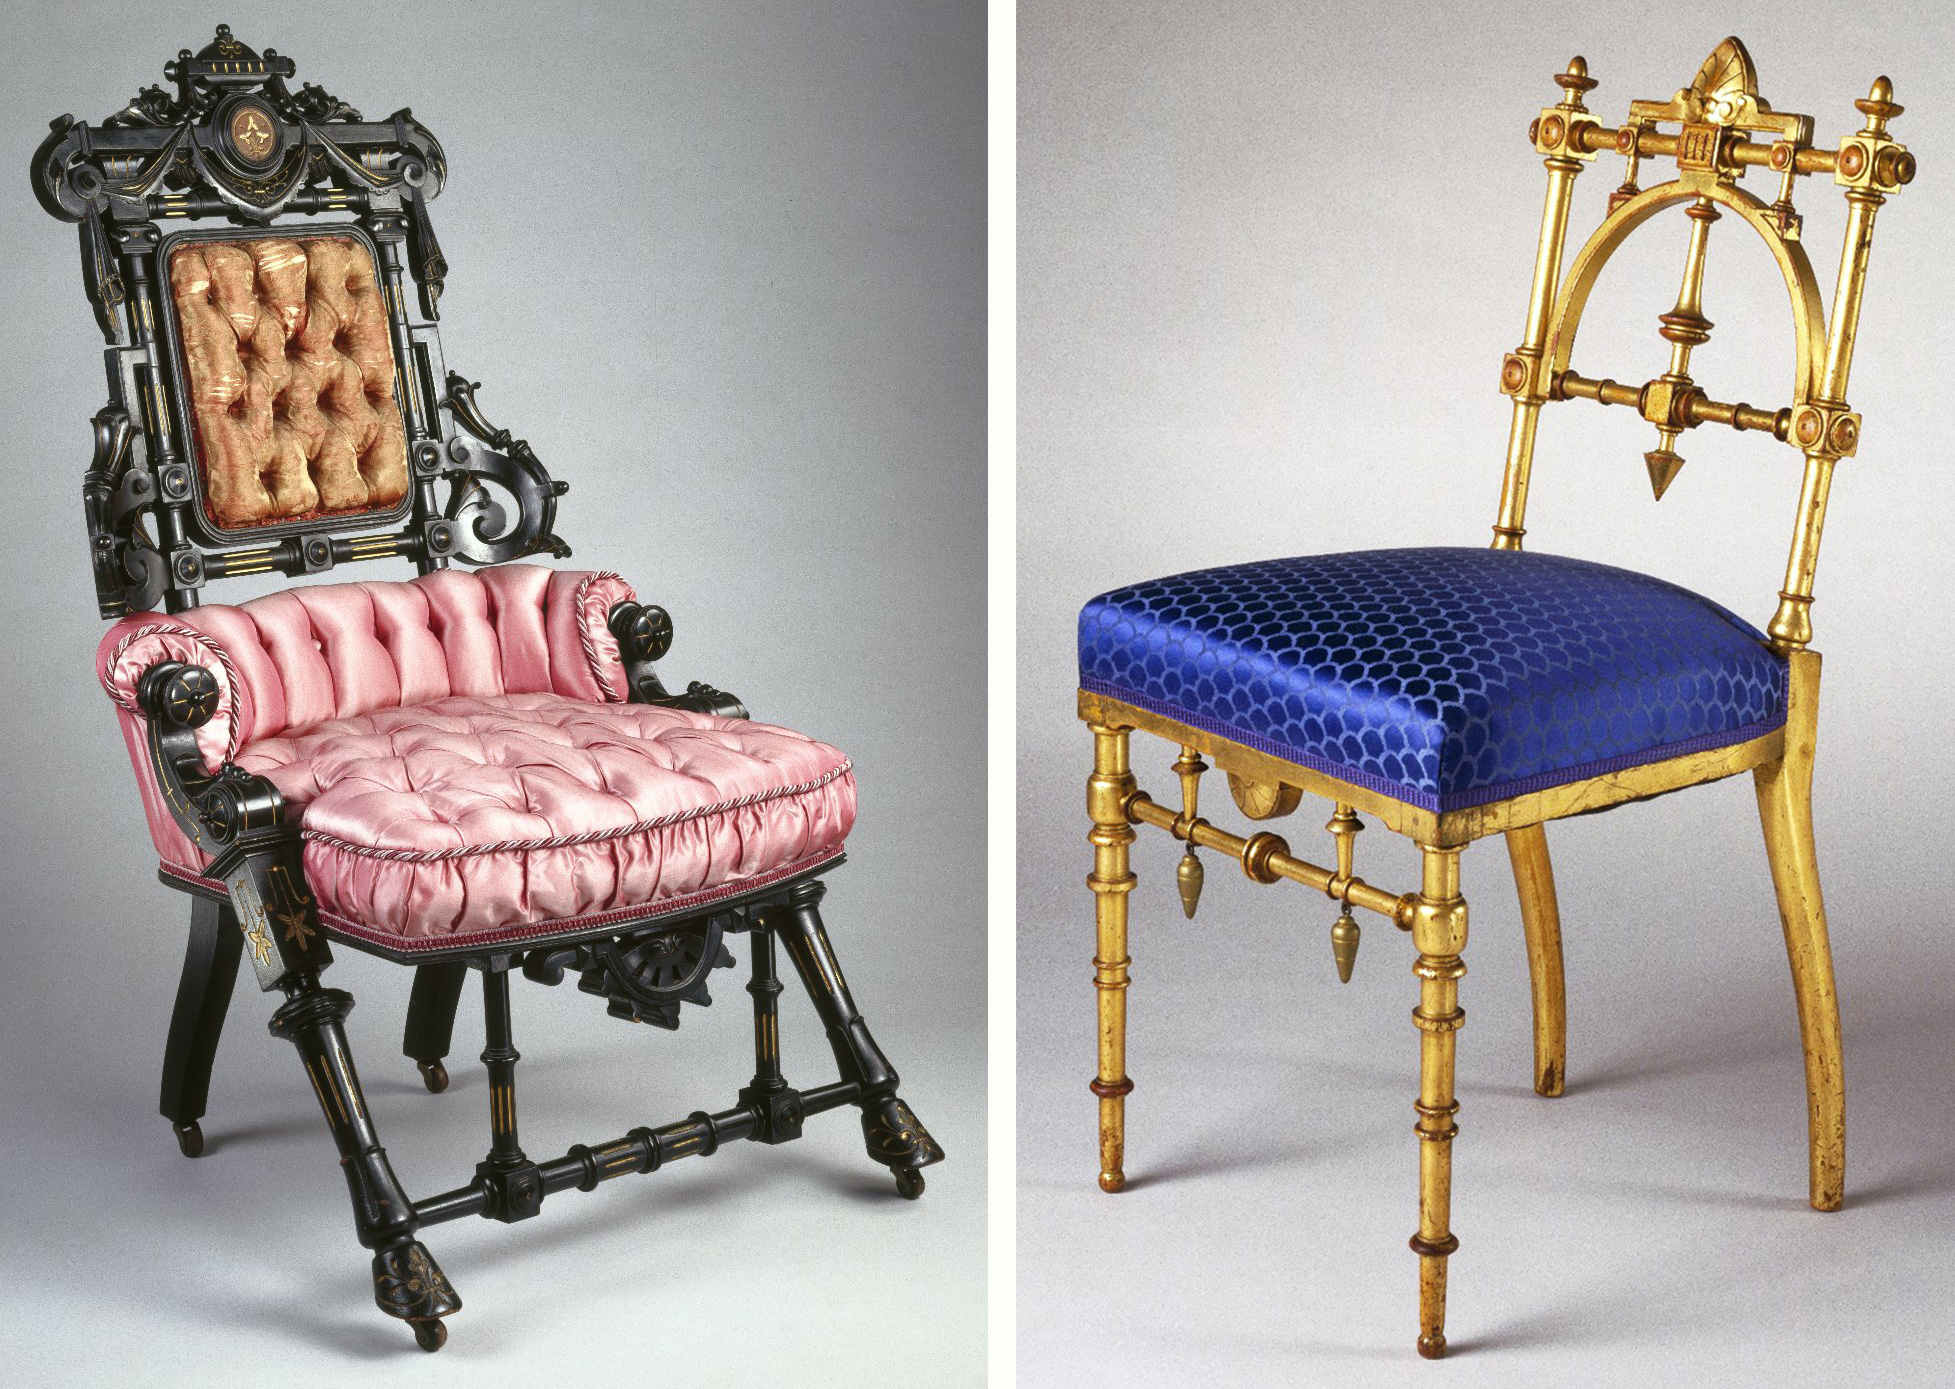 Furniture of the Future: Victorian New York\u0026#8217;s Most Visionary ...